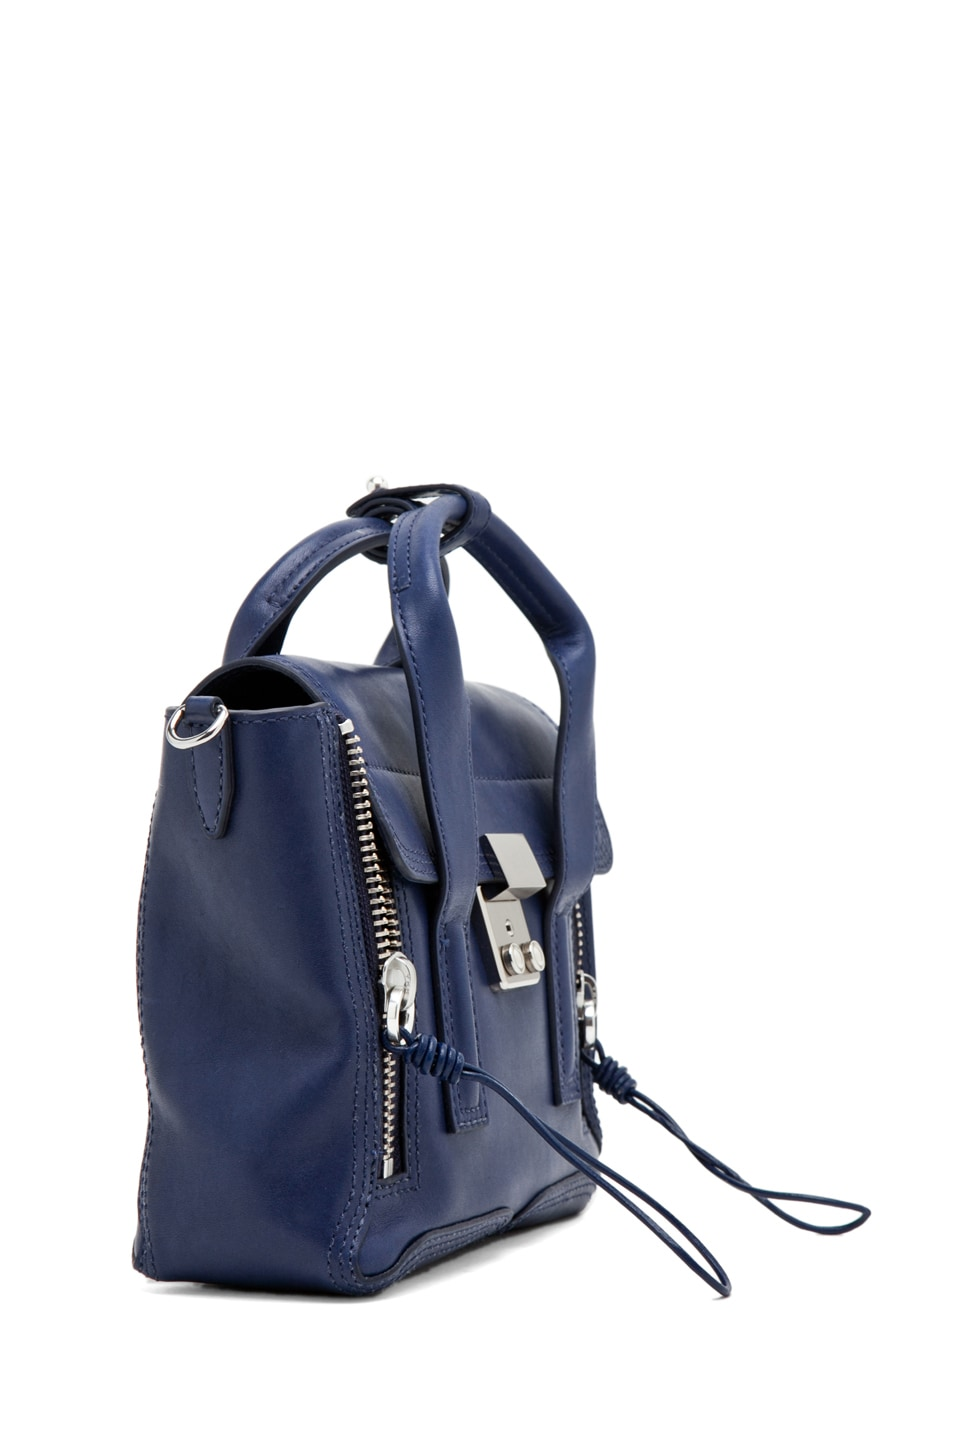 Image 3 of 3.1 phillip lim Pashli Mini Satchel in Navy